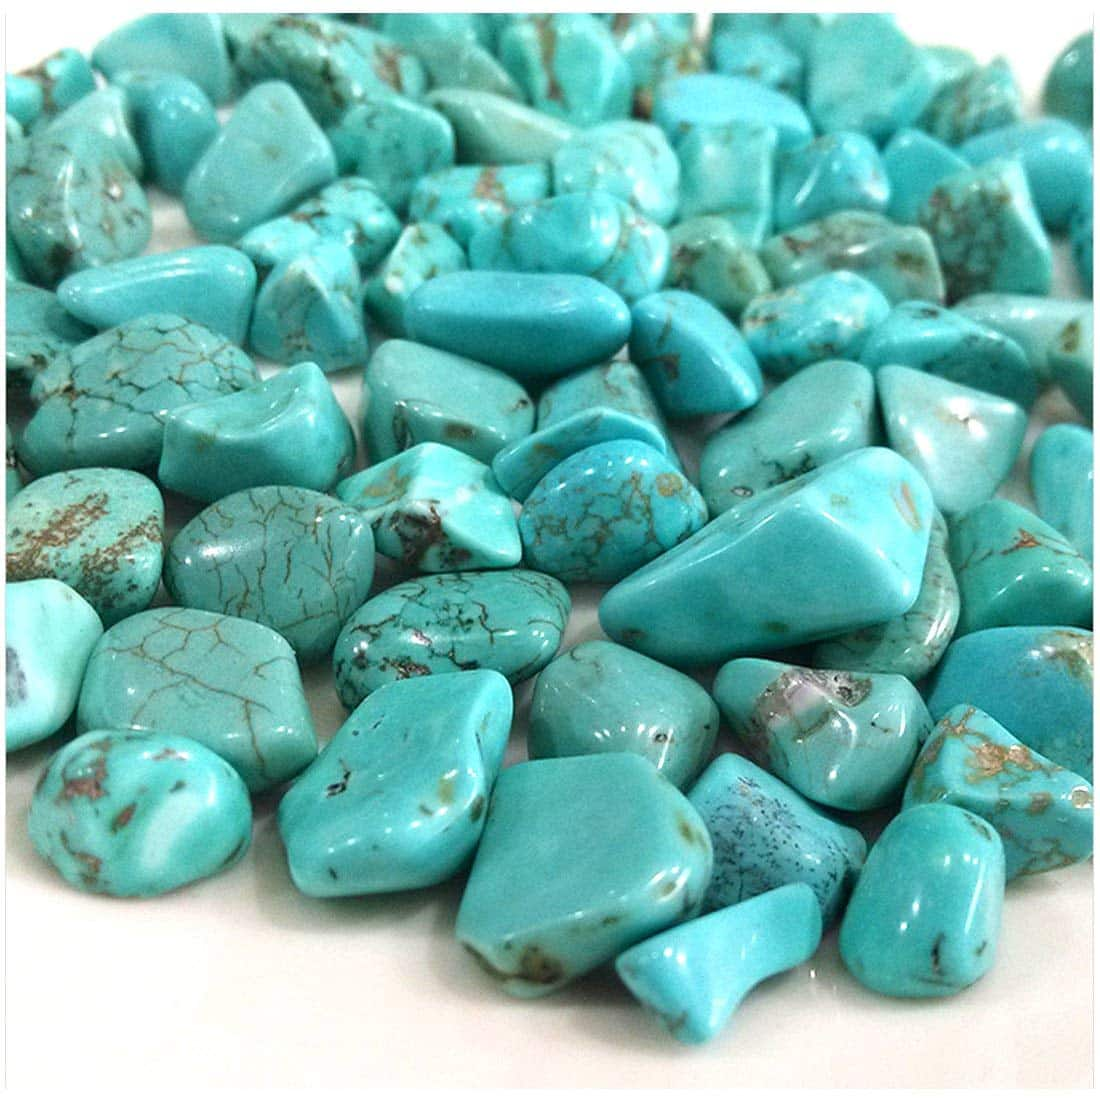 Turquoise - Crystals that Enhance Psychic Ability